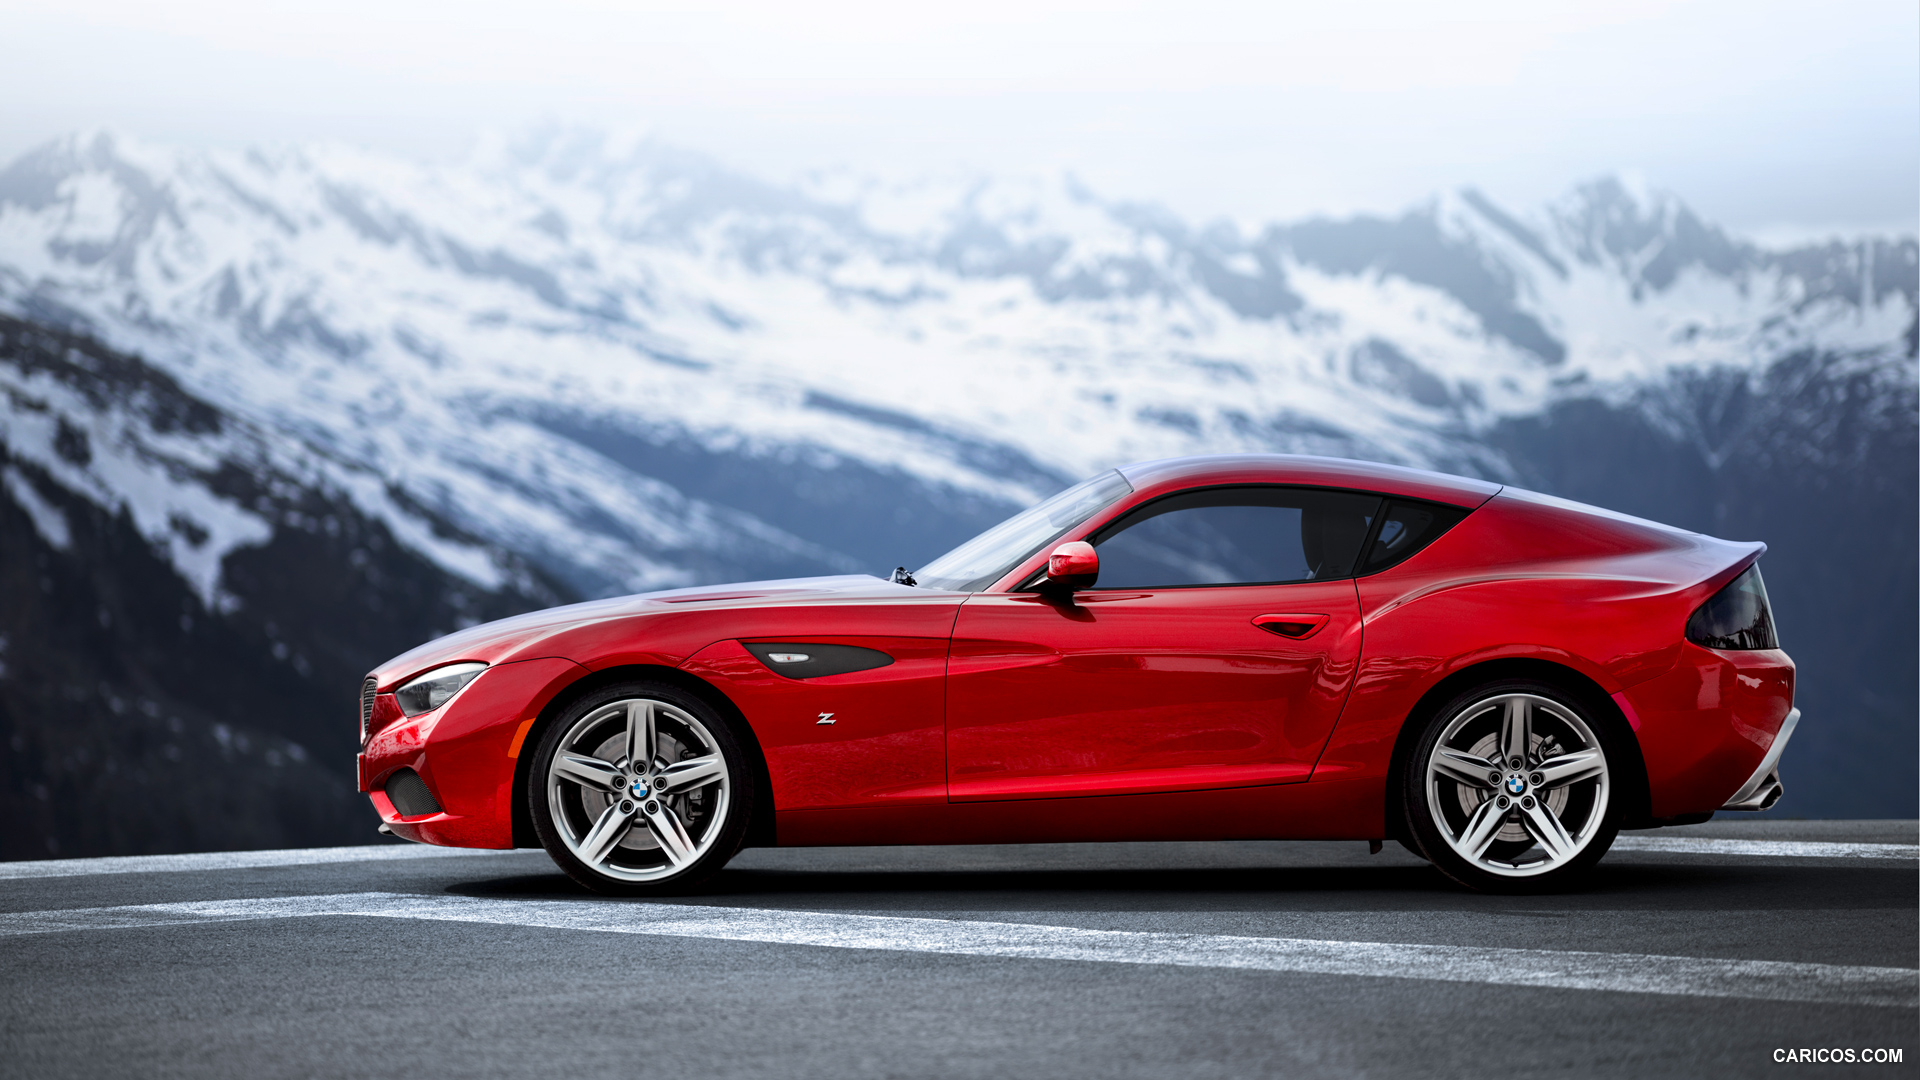 1920x1080 - BMW Zagato Coupe Wallpapers 4